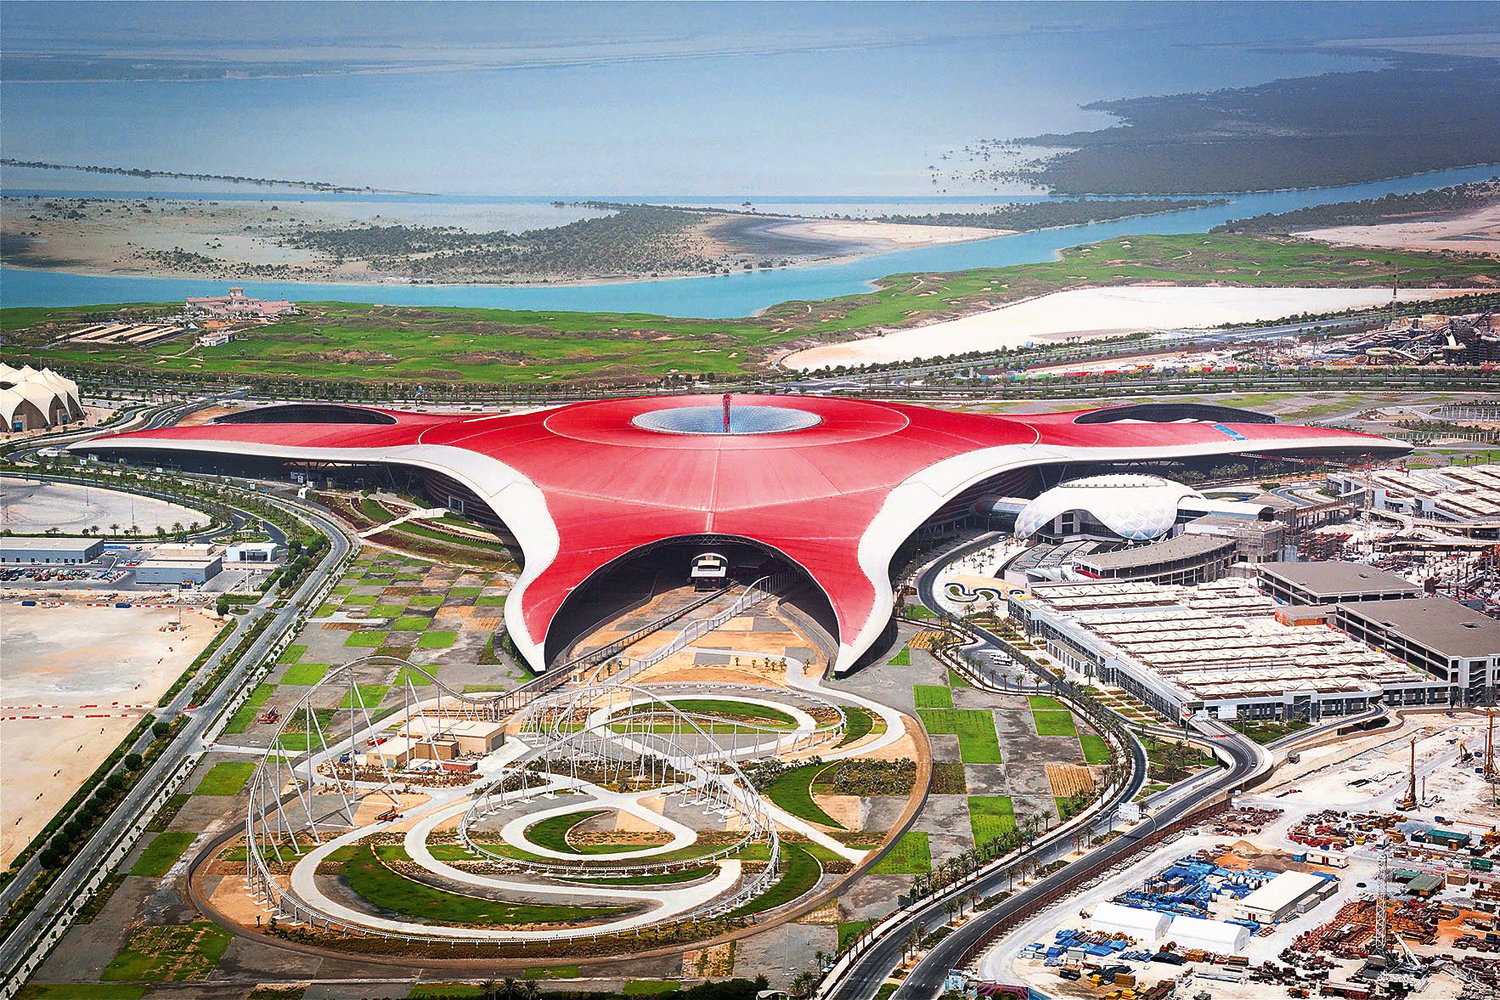 New Roller Coaster And Zip Line To Open At Ferrari World Abu Dhabi Attractions Time Out Abu Dhabi